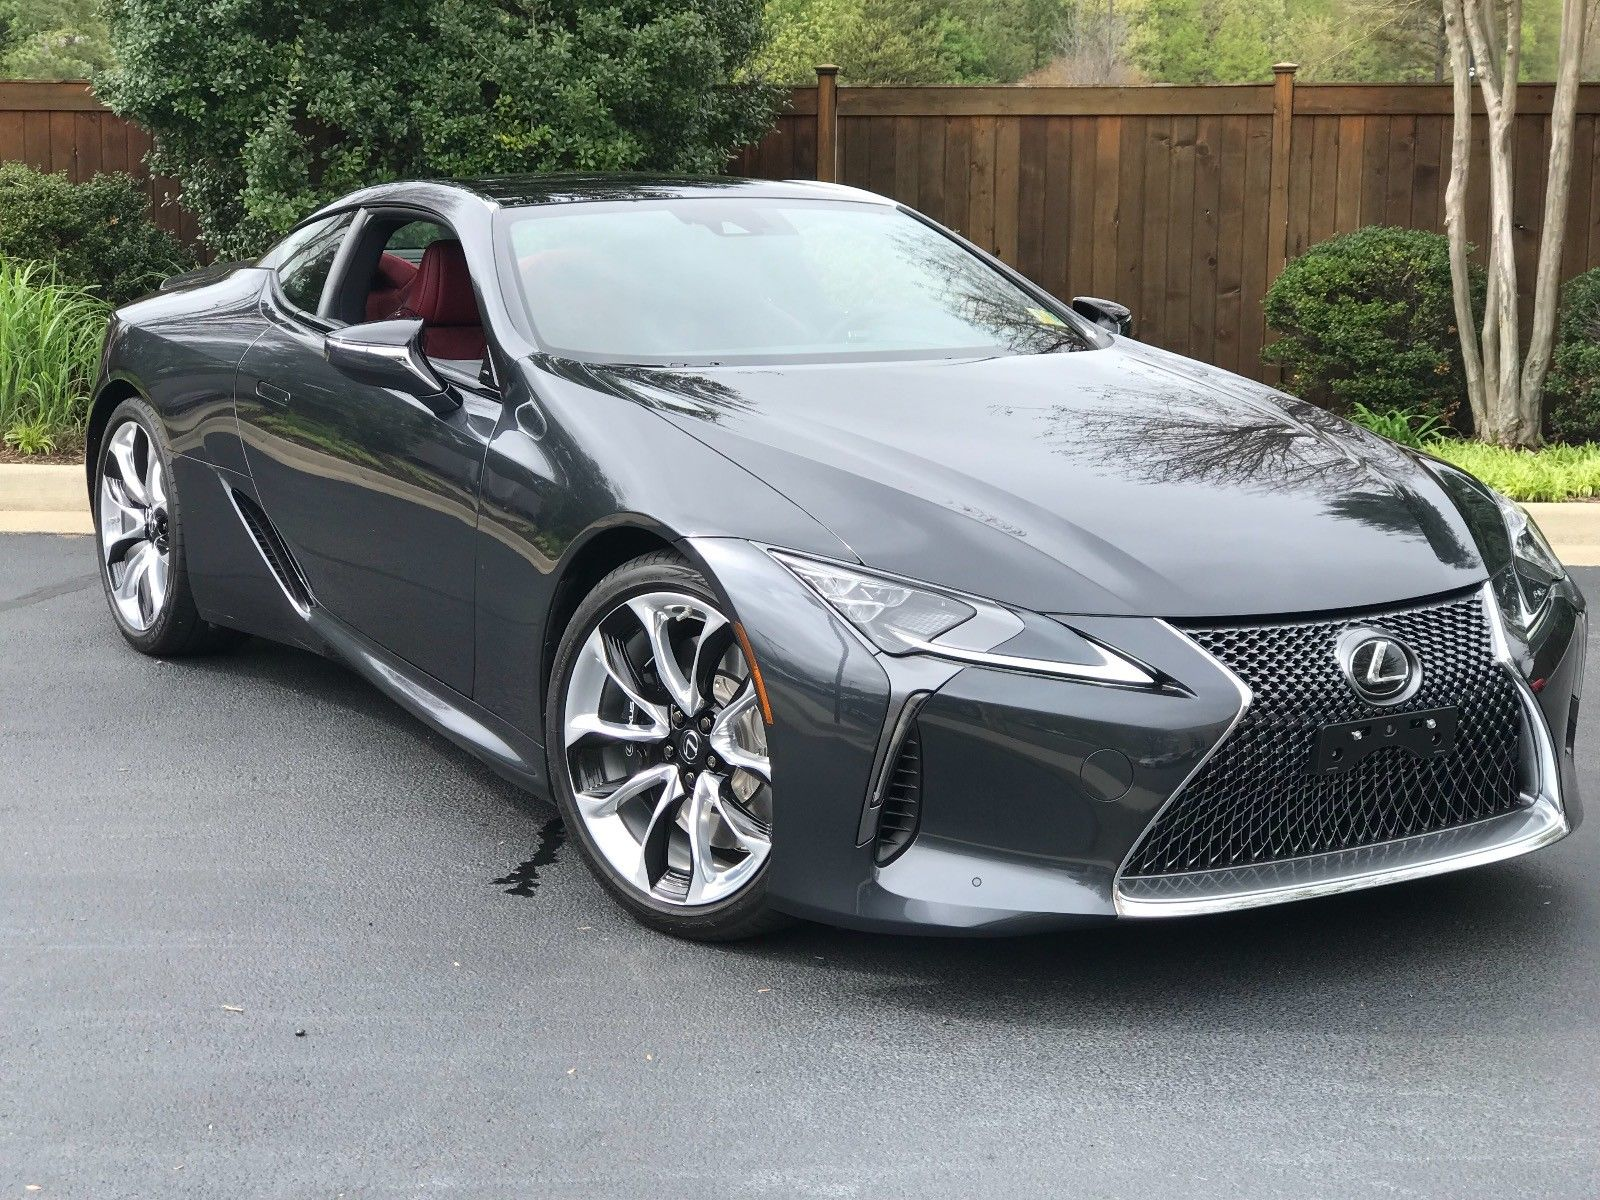 Awesome 2018 Lexus LC500 Base Coupe 2 Door Lexus LC500 2017 2018